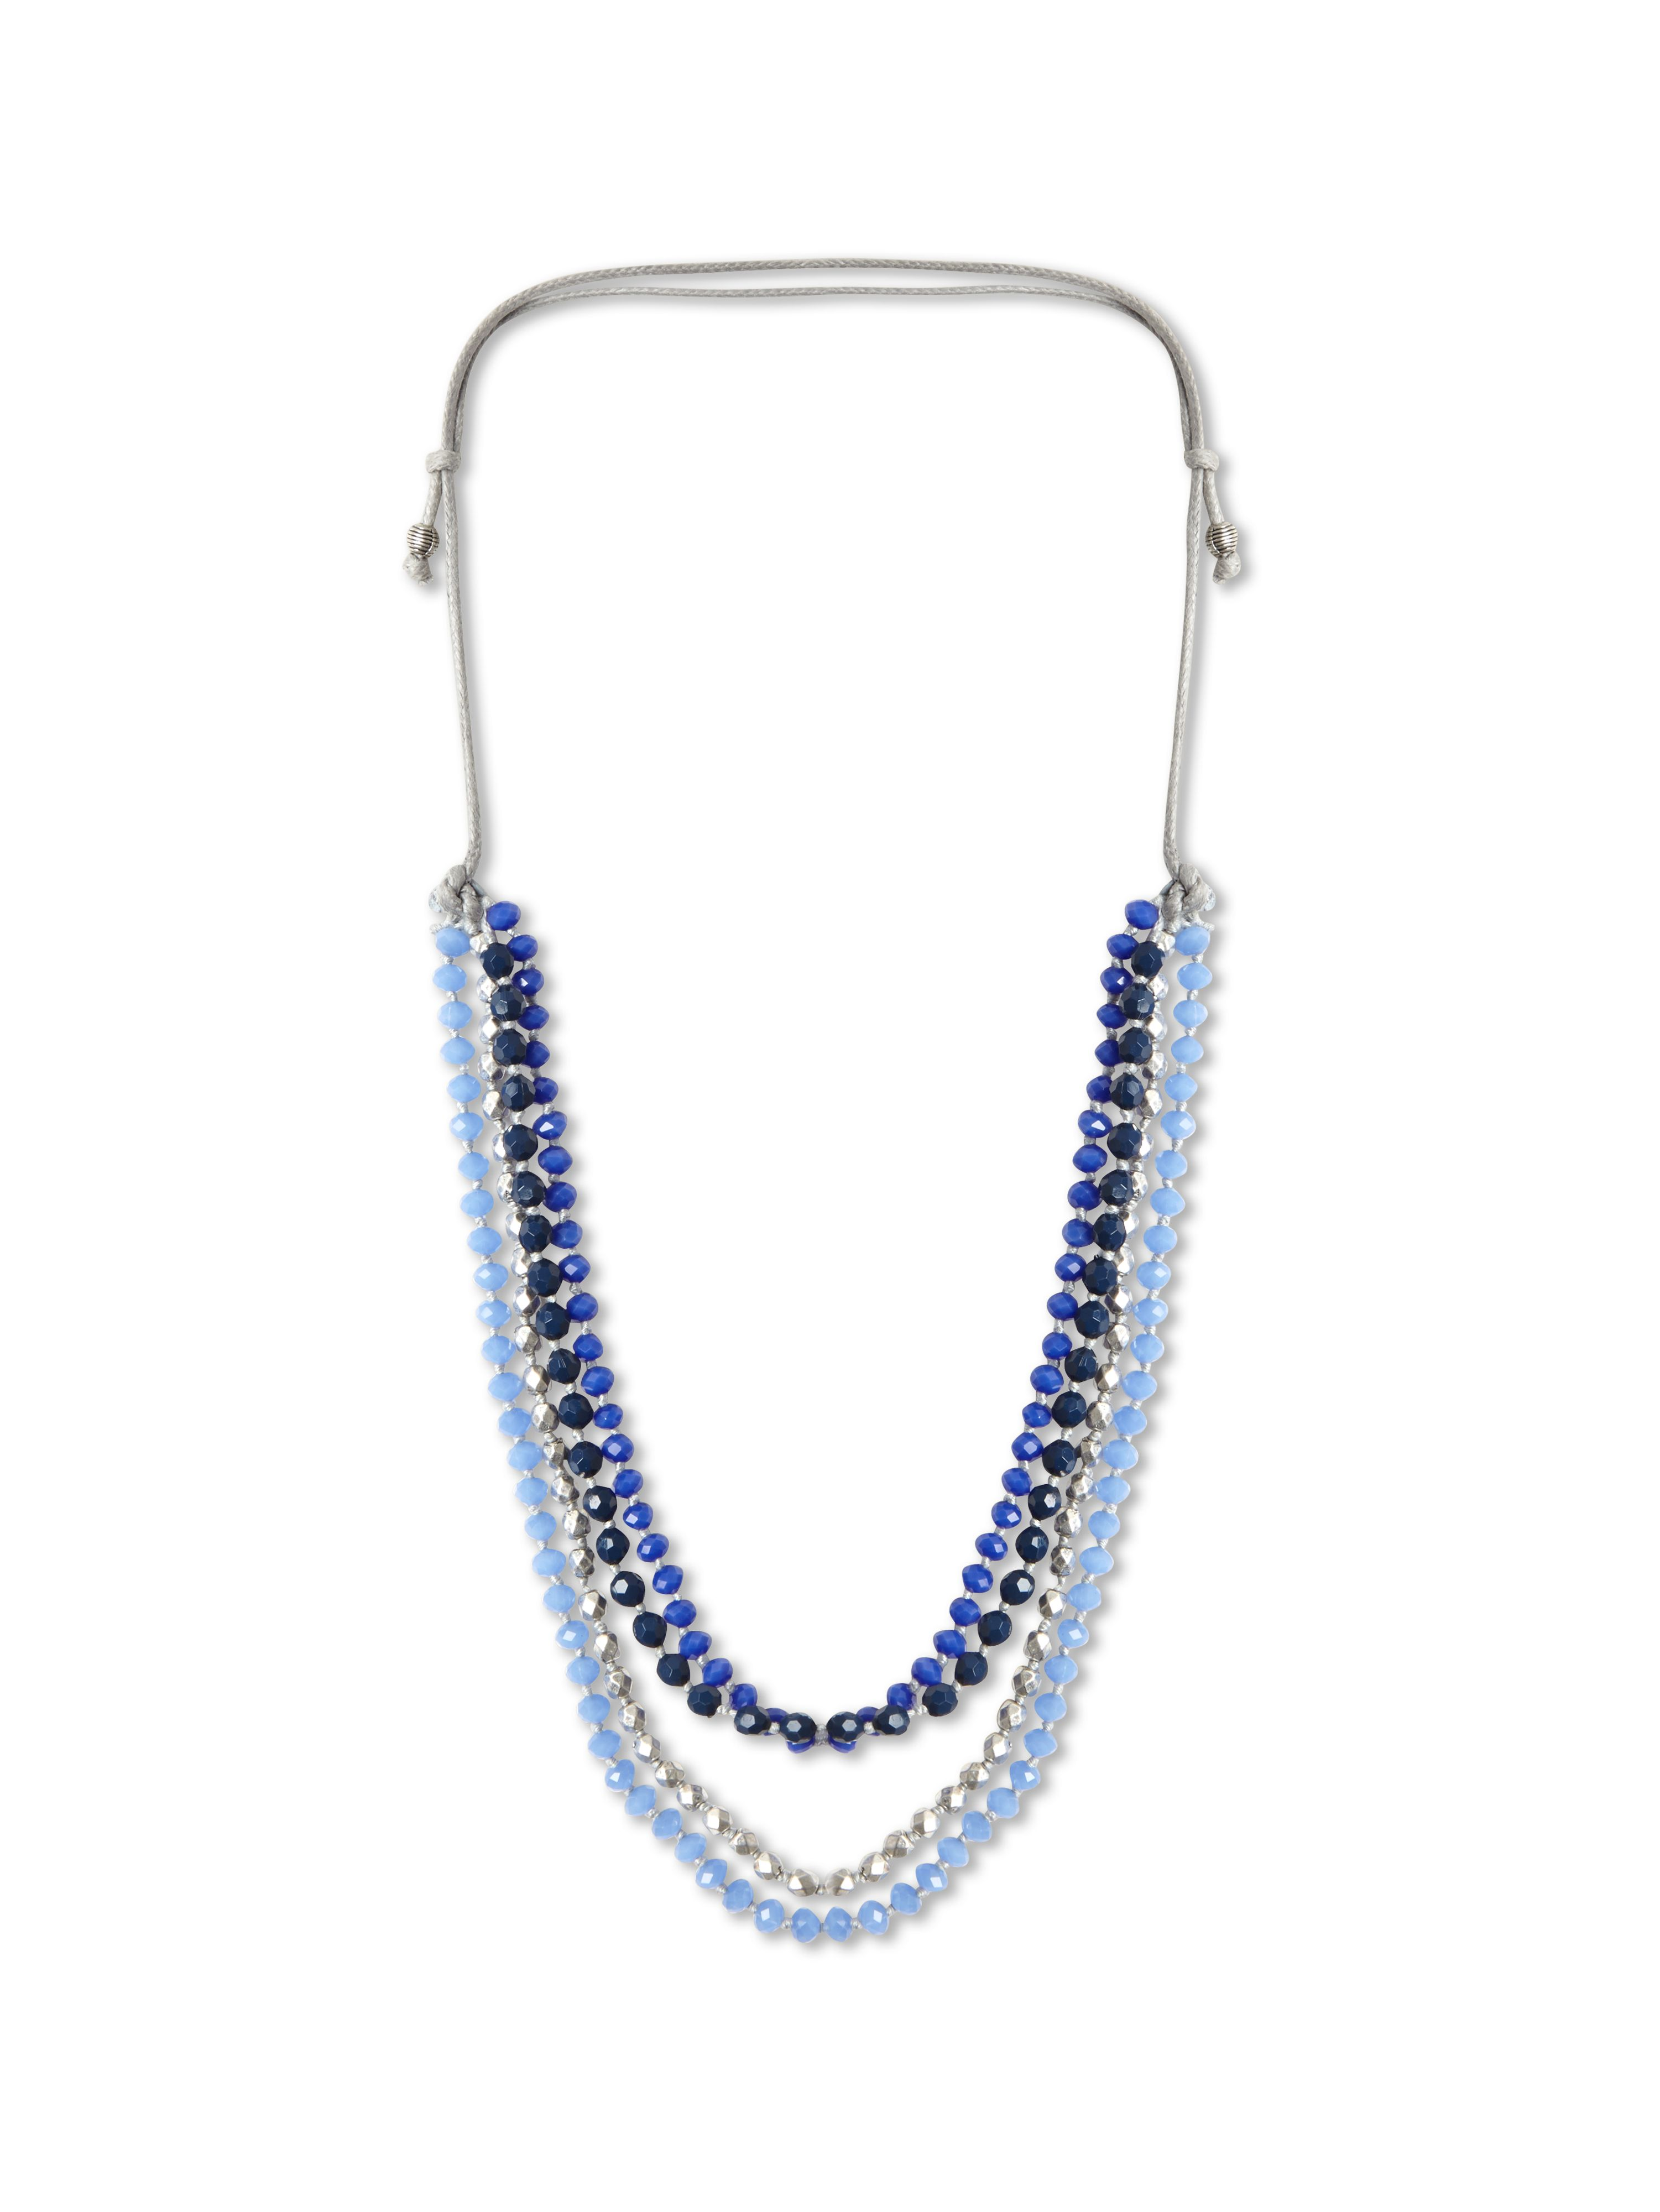 Glass multi strand necklace